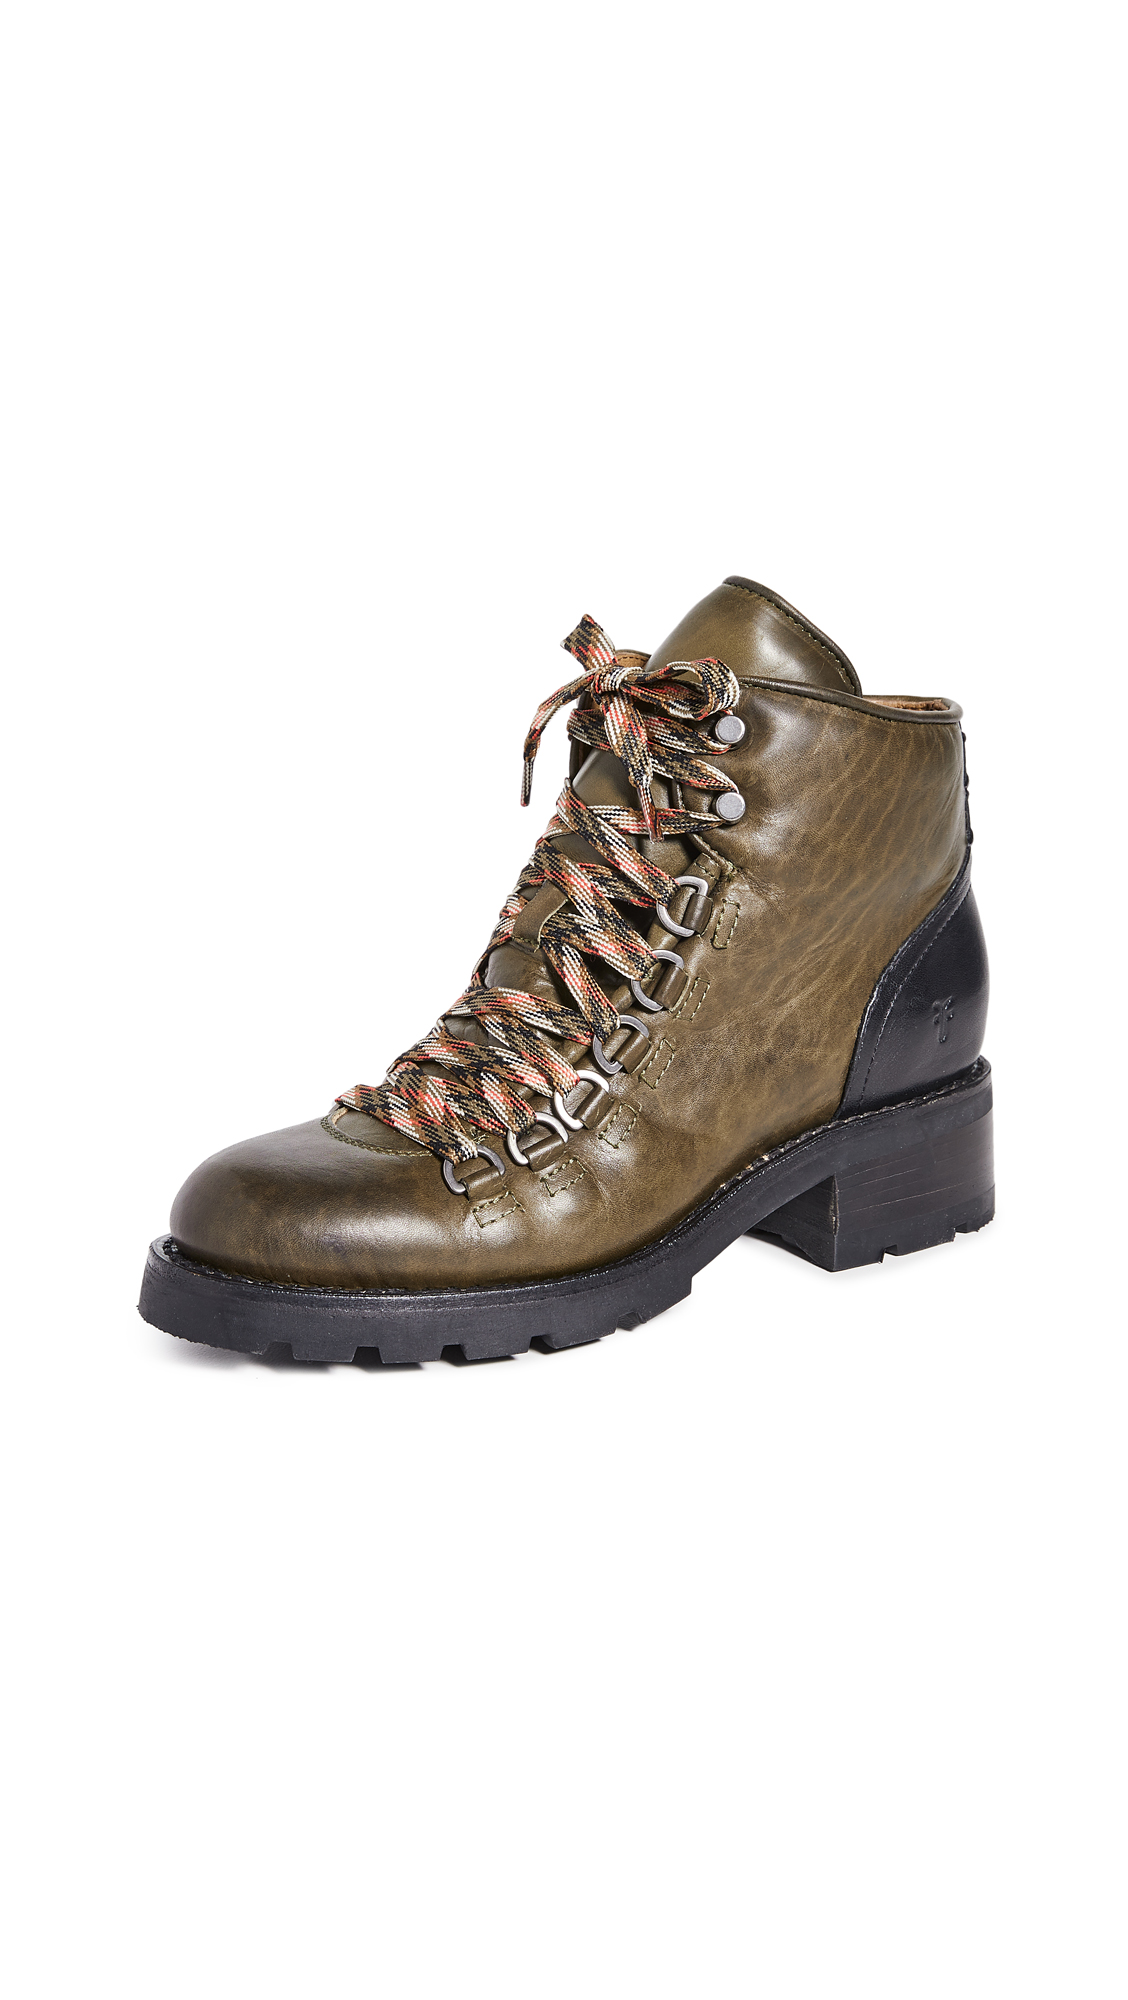 Frye Alta Hiker Boots – 50% Off Sale